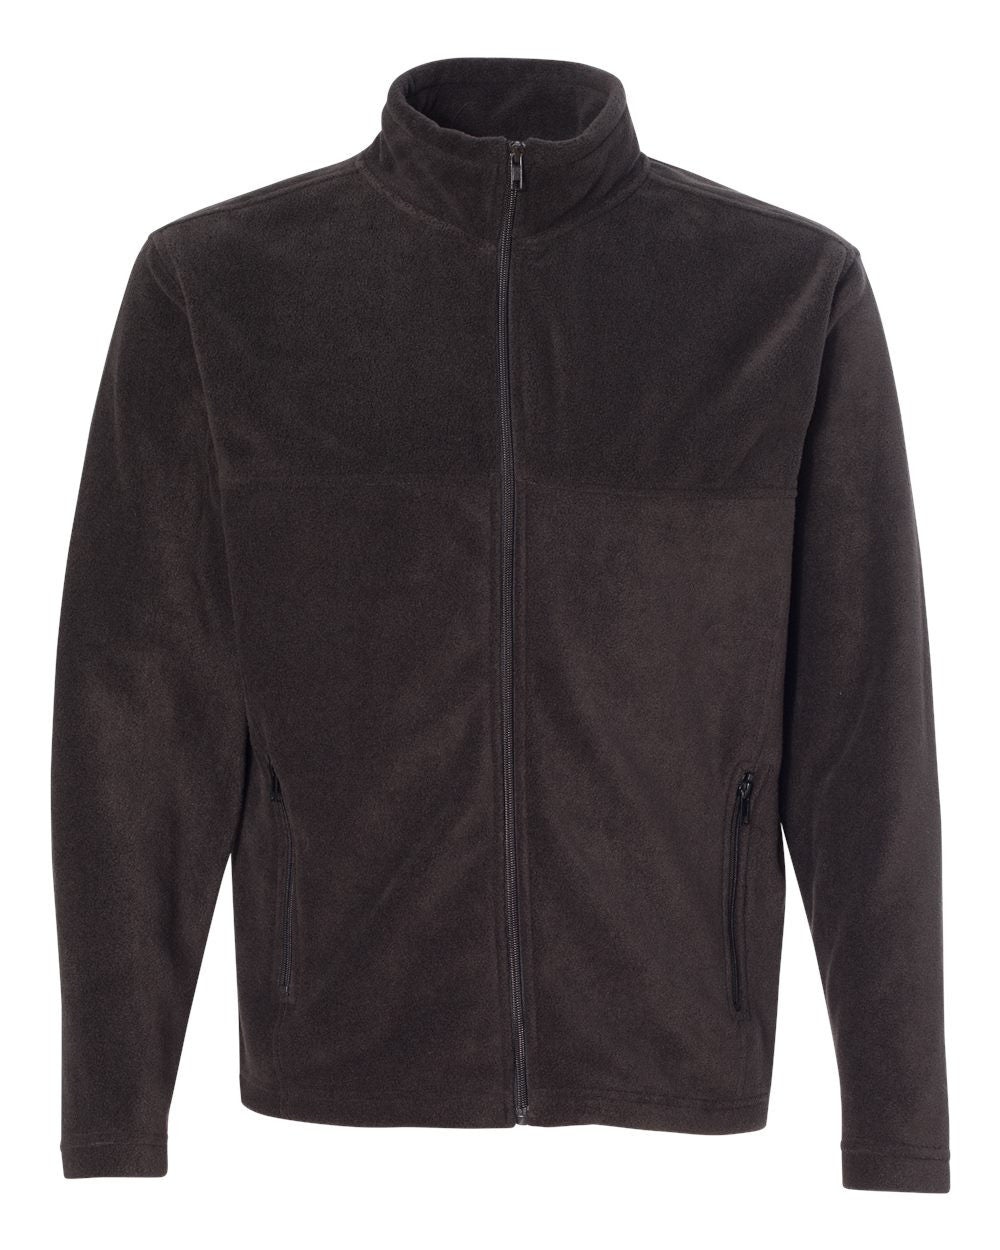 Full Zip Fleece Jacket for Sports - Discountedrack.com